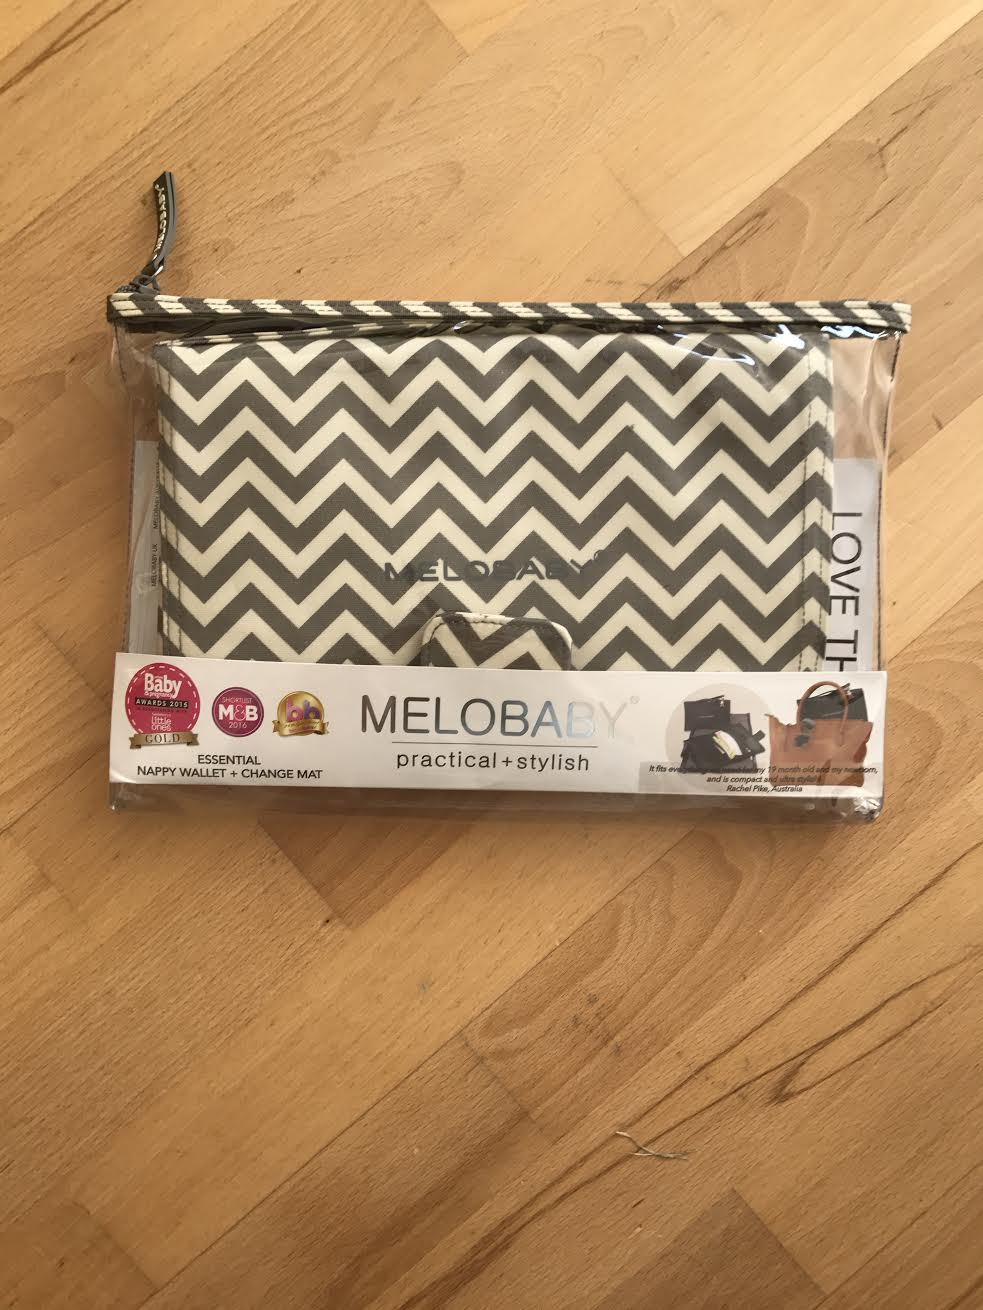 Melobaby Deluxe Nappy Wallet And Change Mat Review 187 Frost